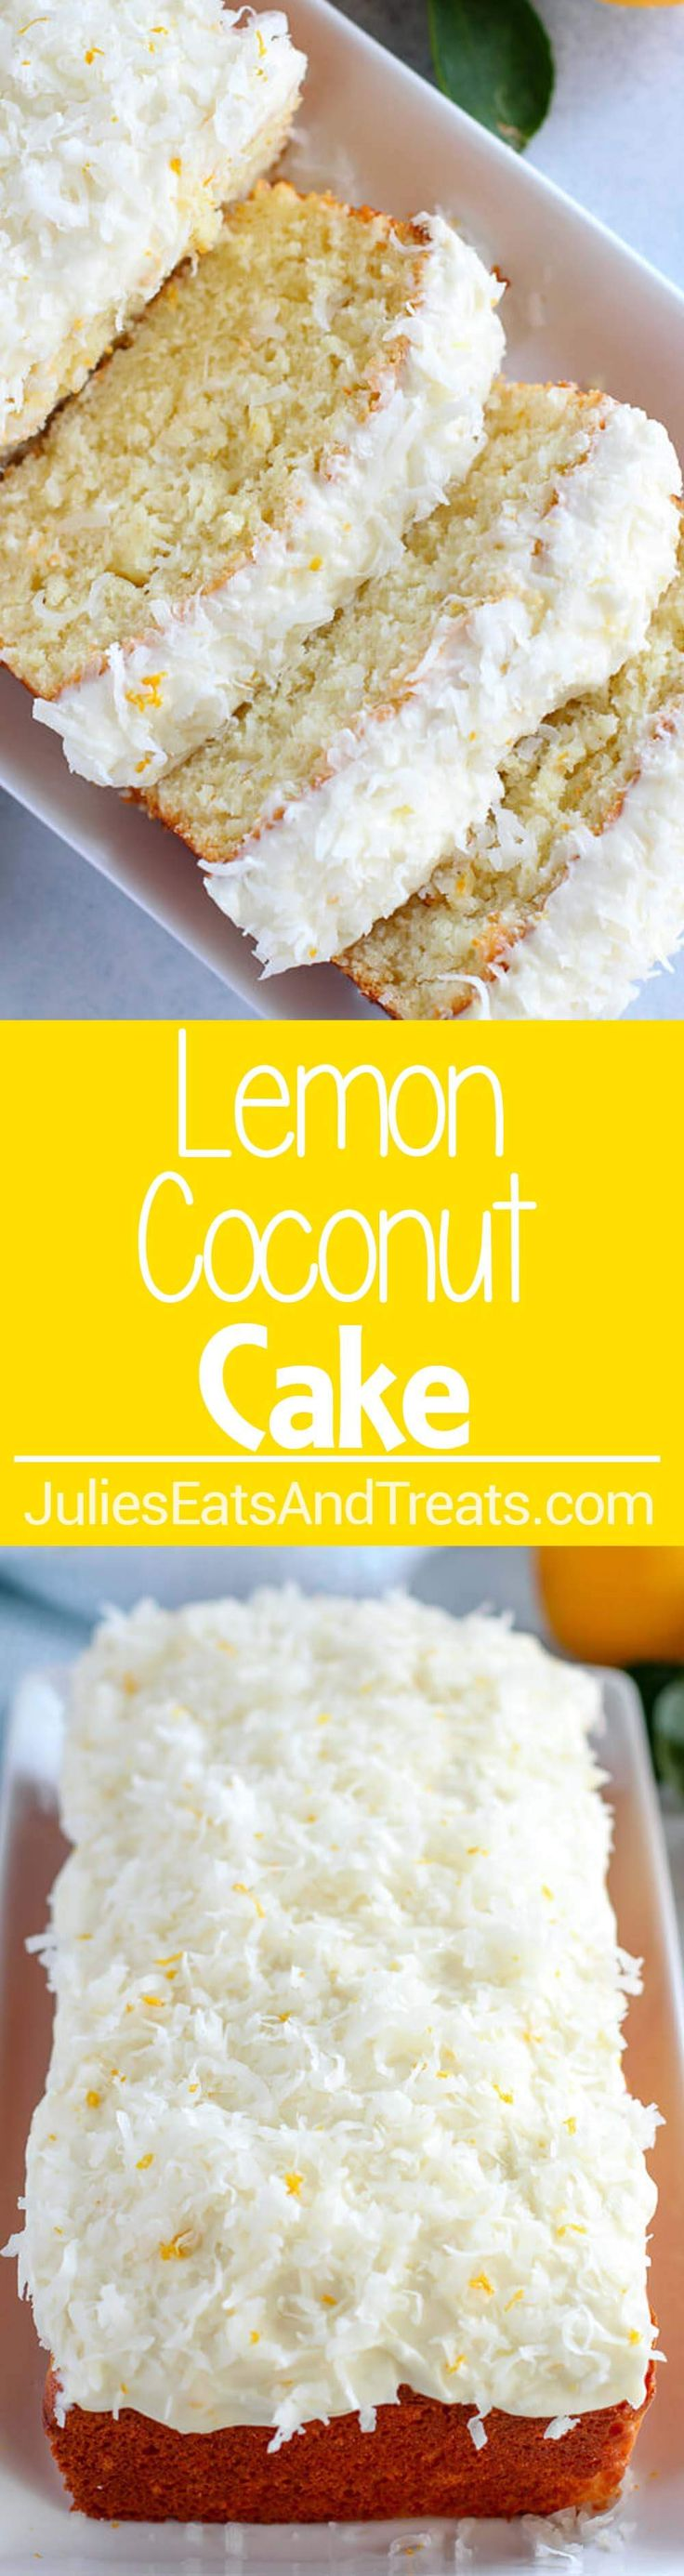 Lemon Coconut Cake ~ Moist, Flavorful Homemade Cake Topped with Lemon and Coconut Cream Cheese Frosting!  via @julieseats